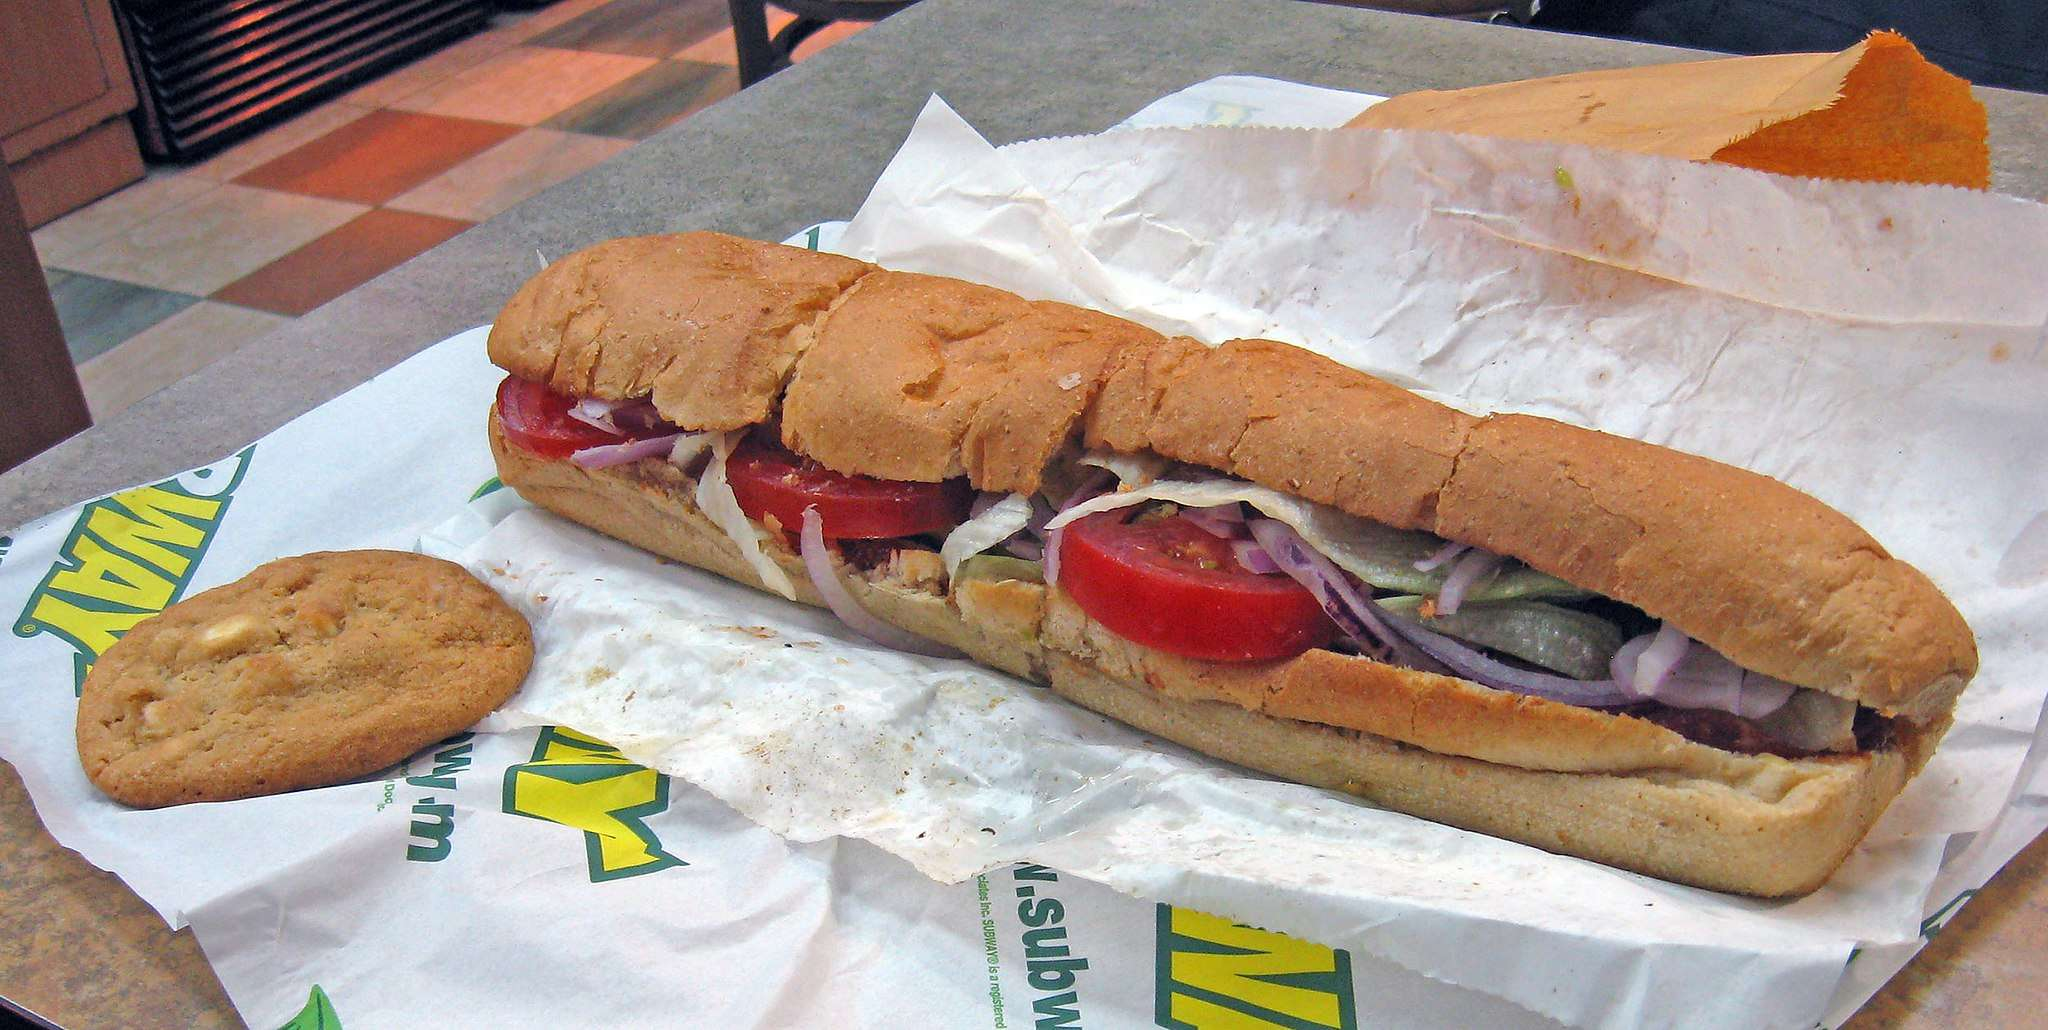 Subway Sandwich - if you must buy airport food, this is  usually a good value.